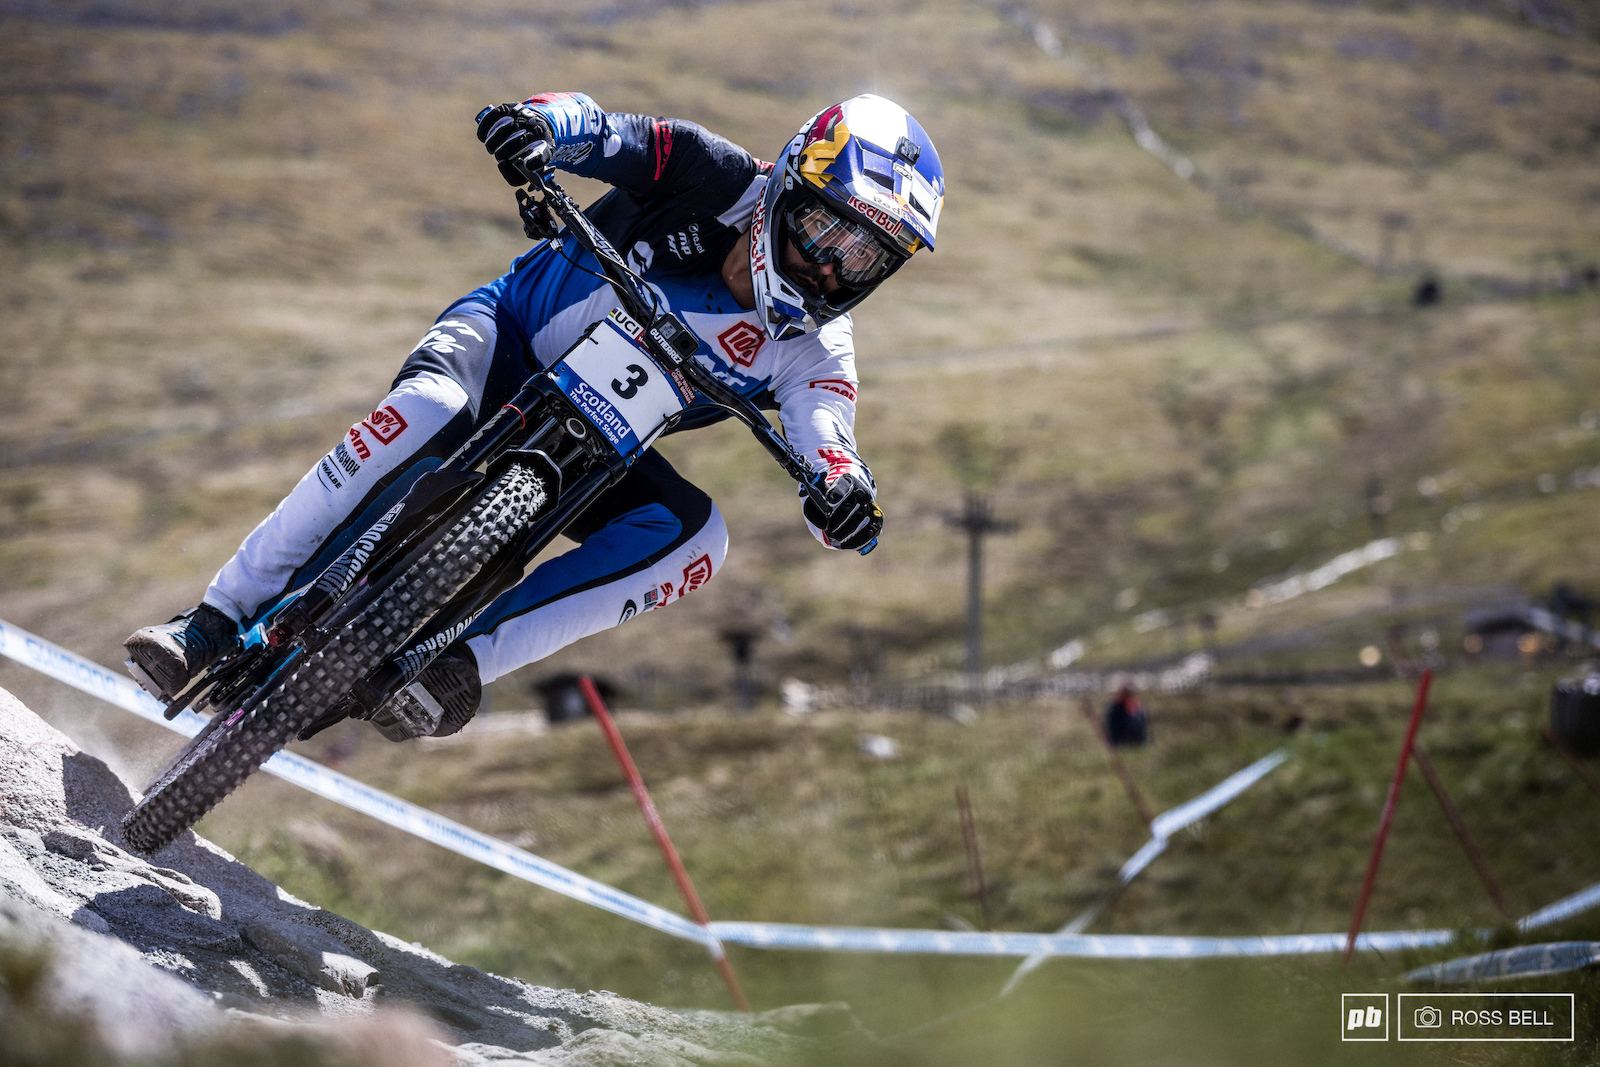 Marcelo Gutierrez and Fort William are a good combination. The Colombian scored his first podium here and will hope for more of the same come Sunday.